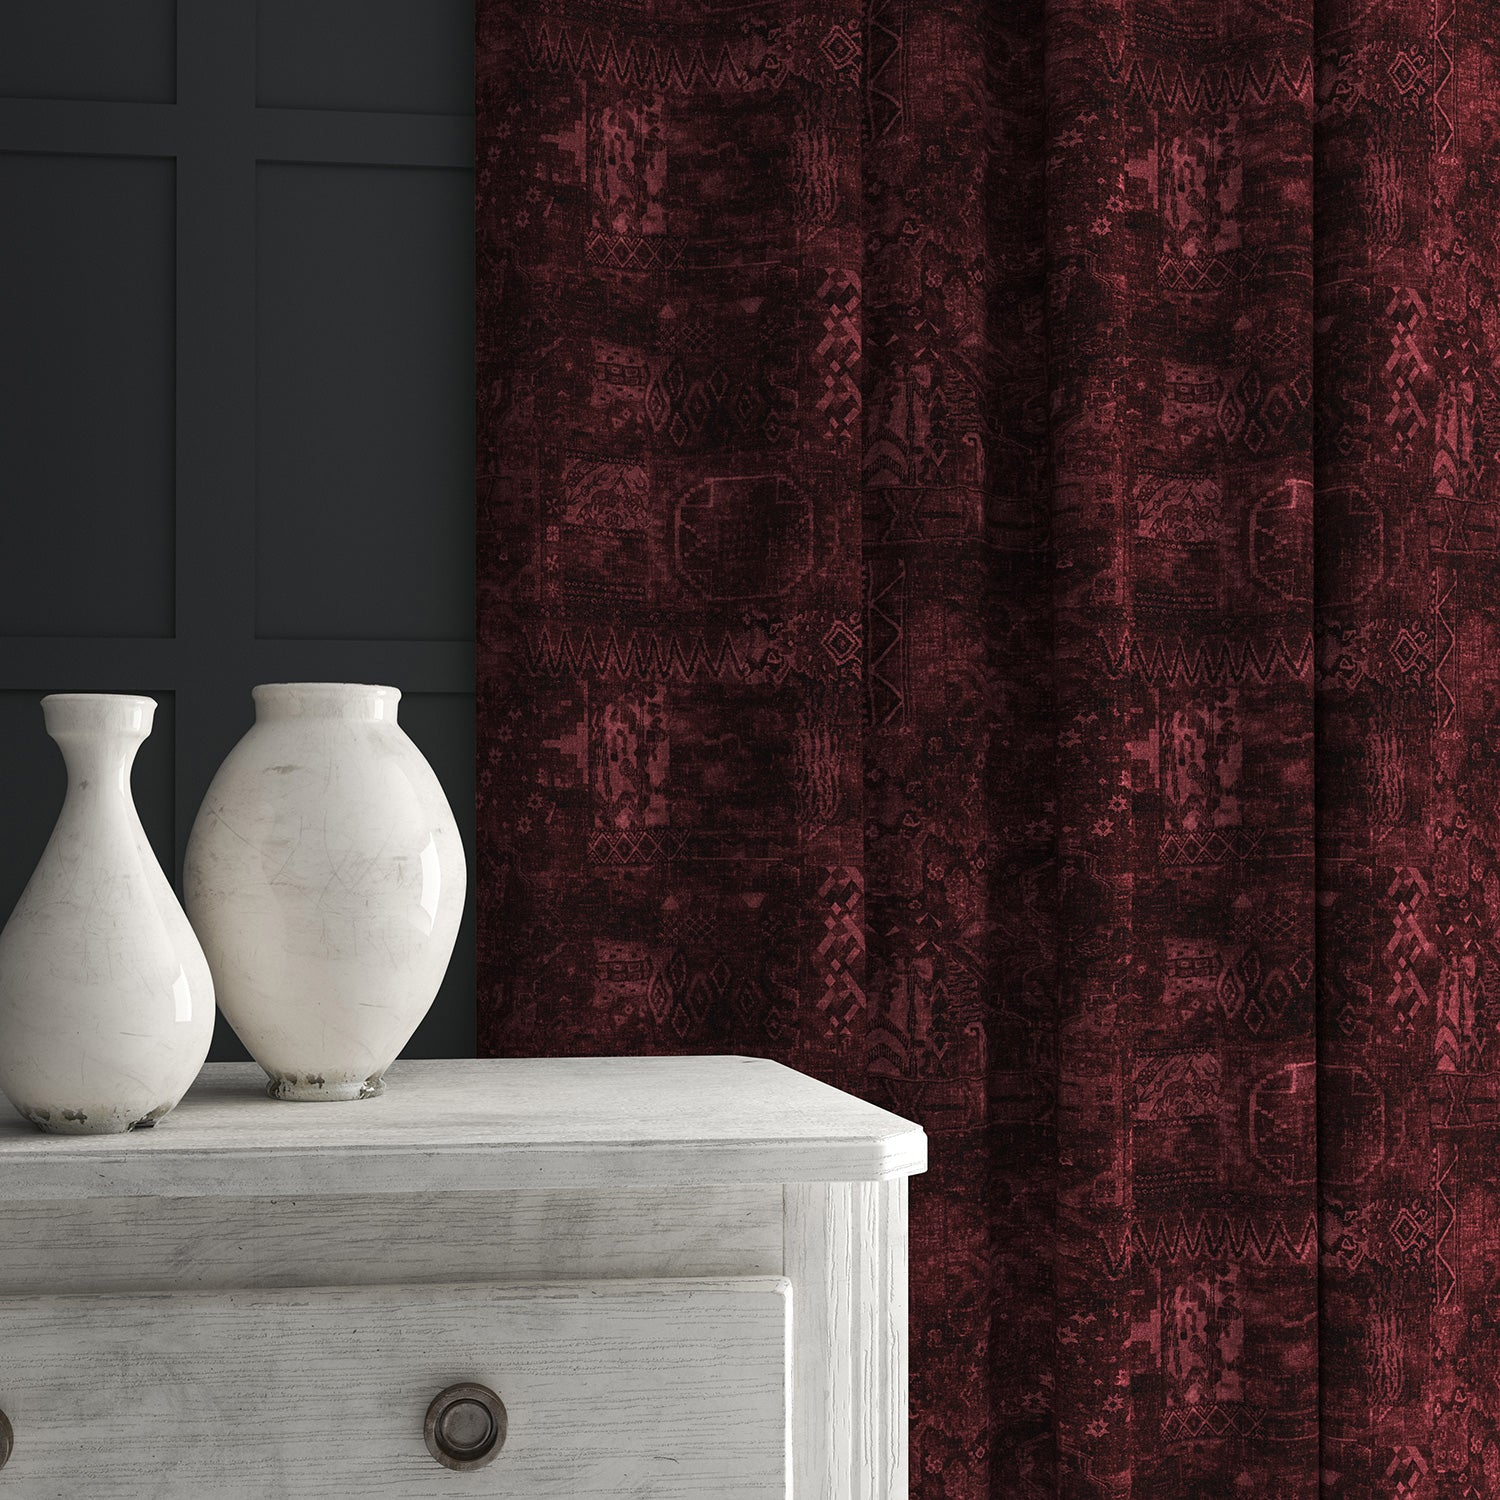 Velvet curtain in a dark red velvet fabric with a contemporary carpet design